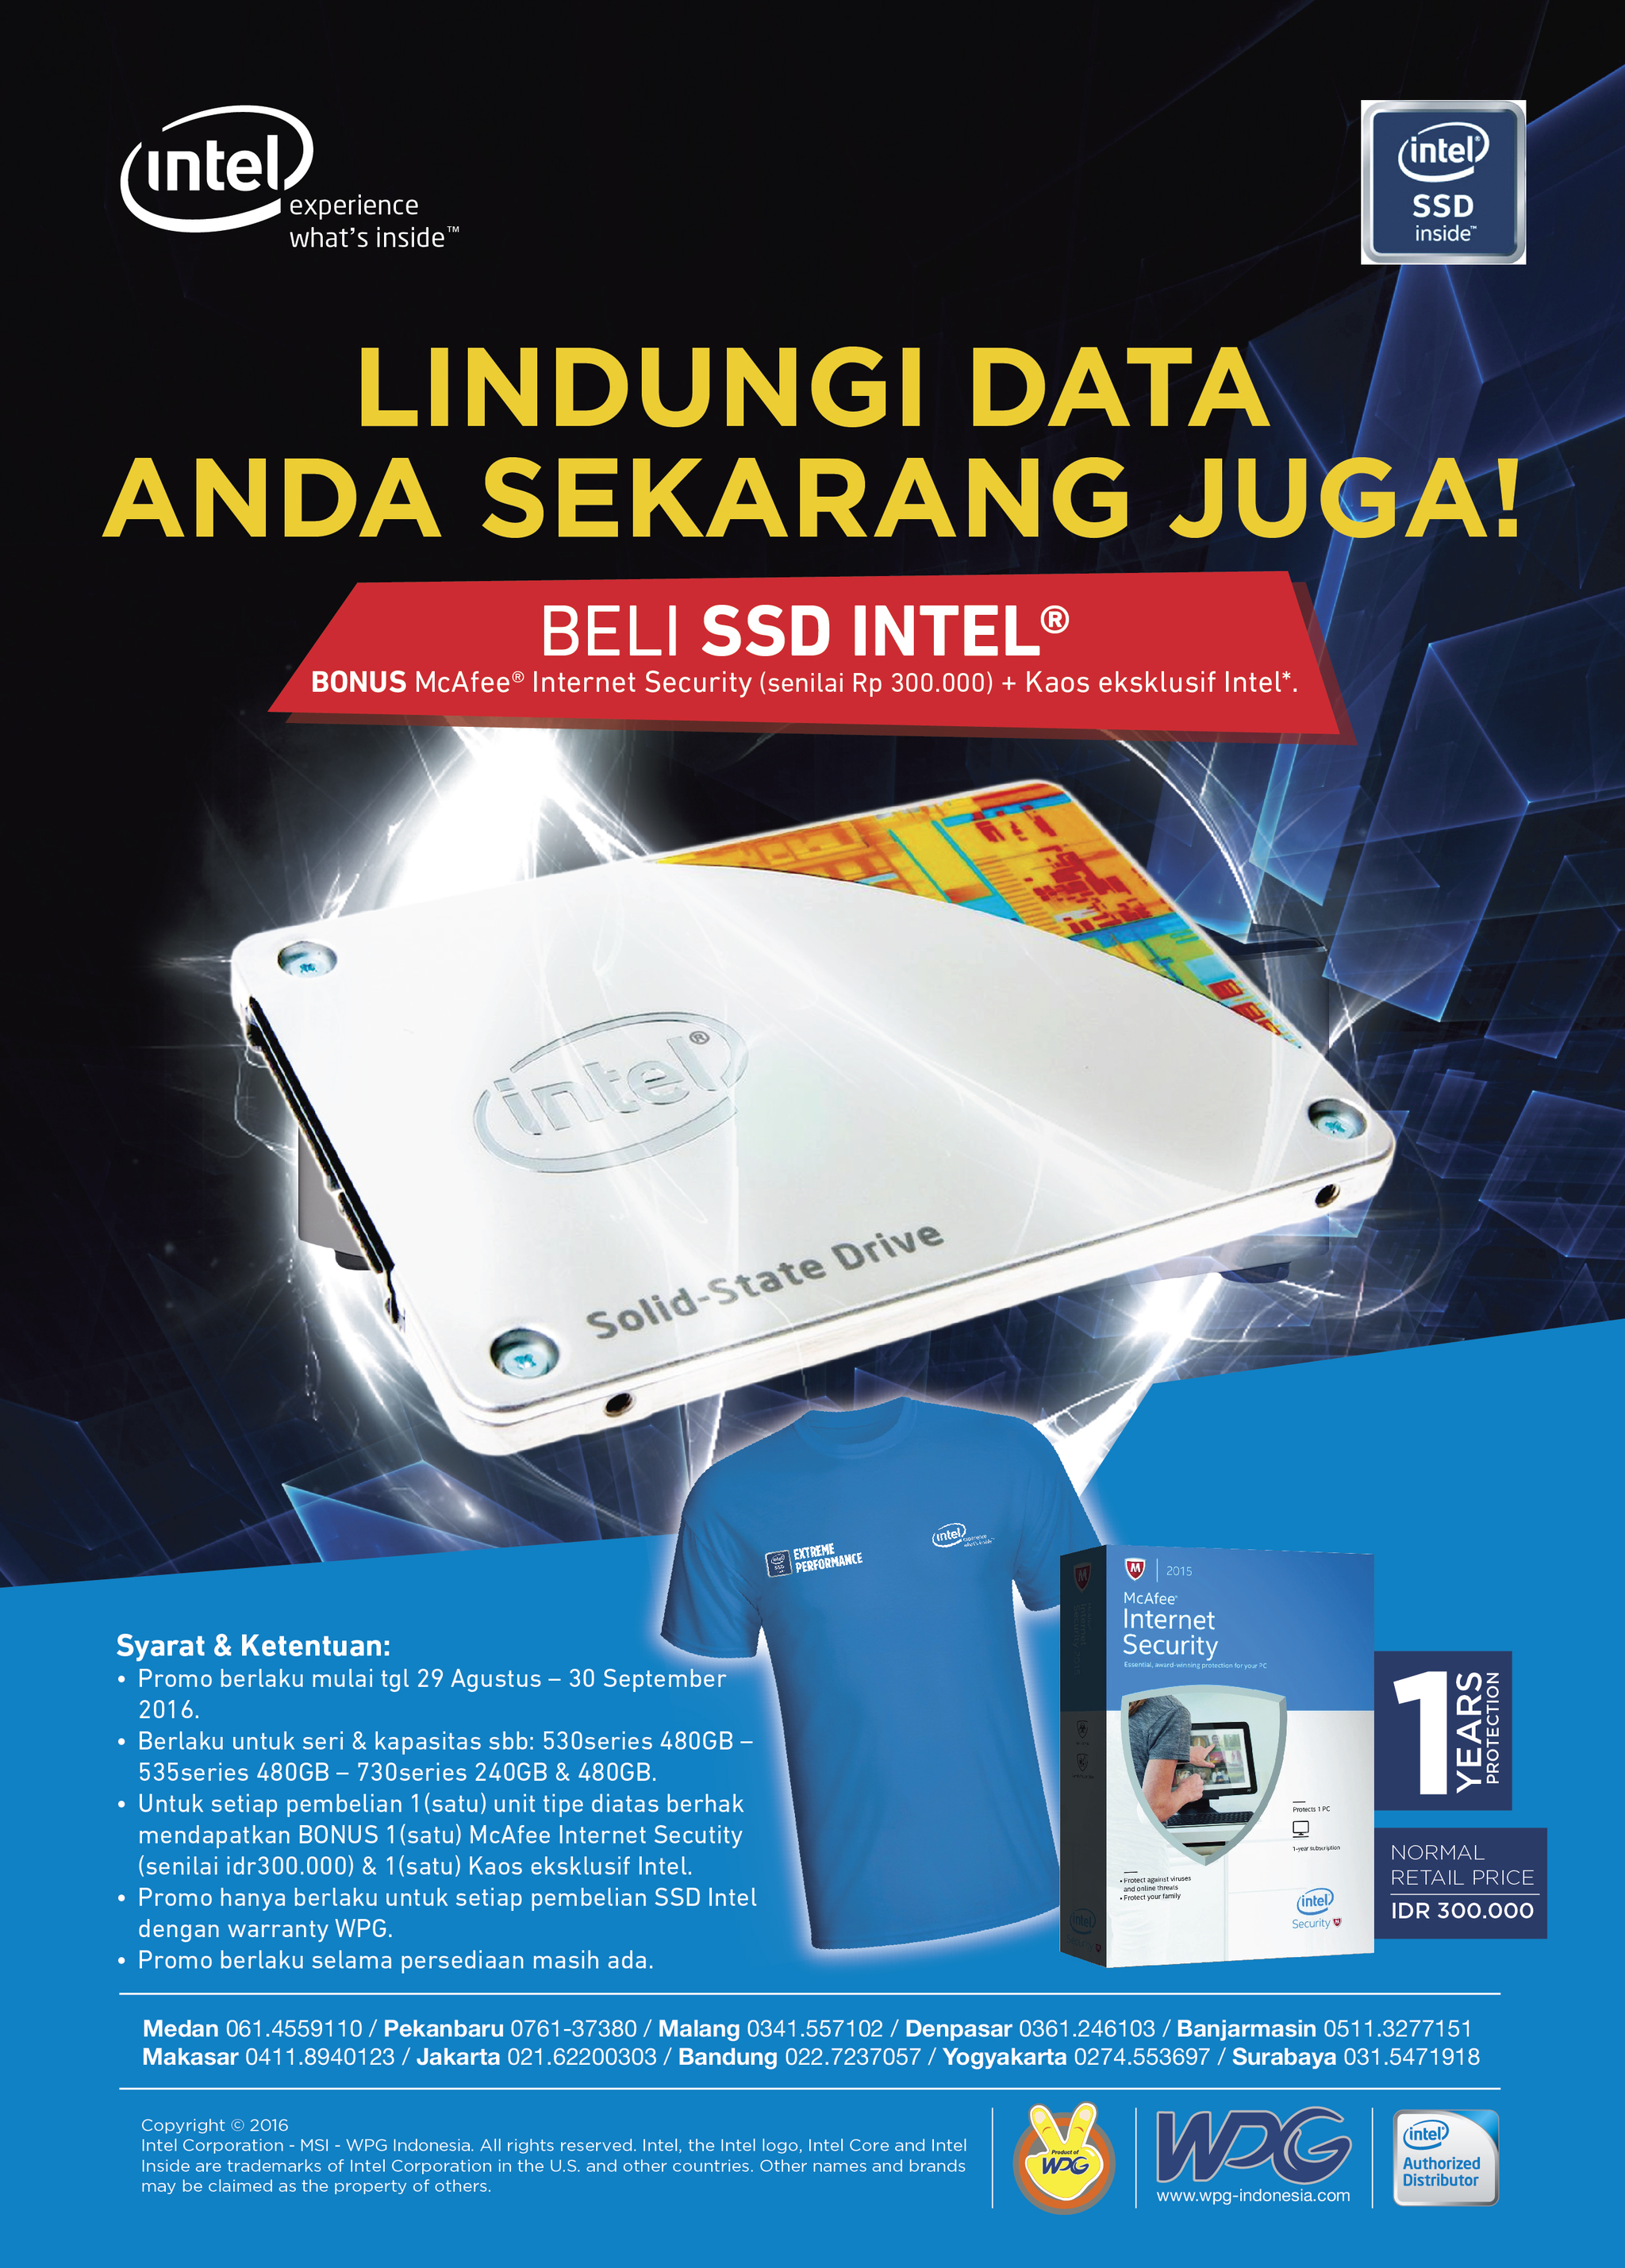 SSD Intel 530 Series 480GB